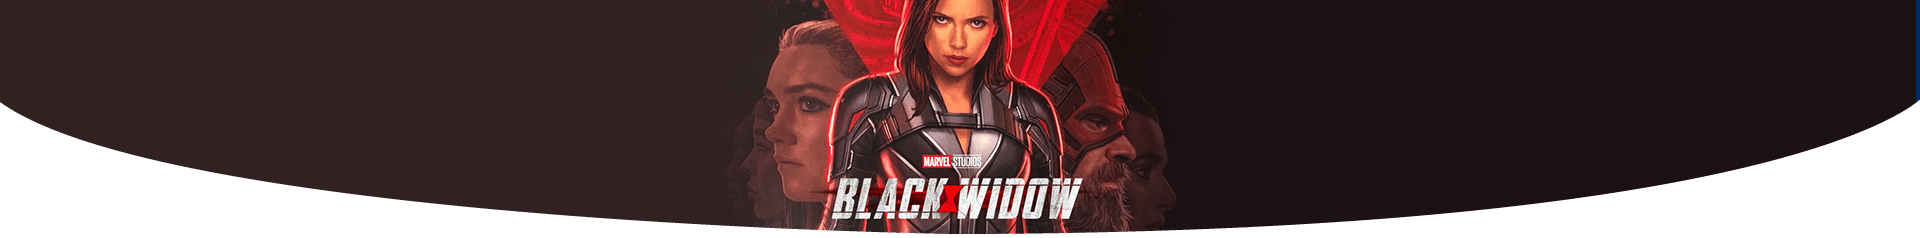 black-widow1